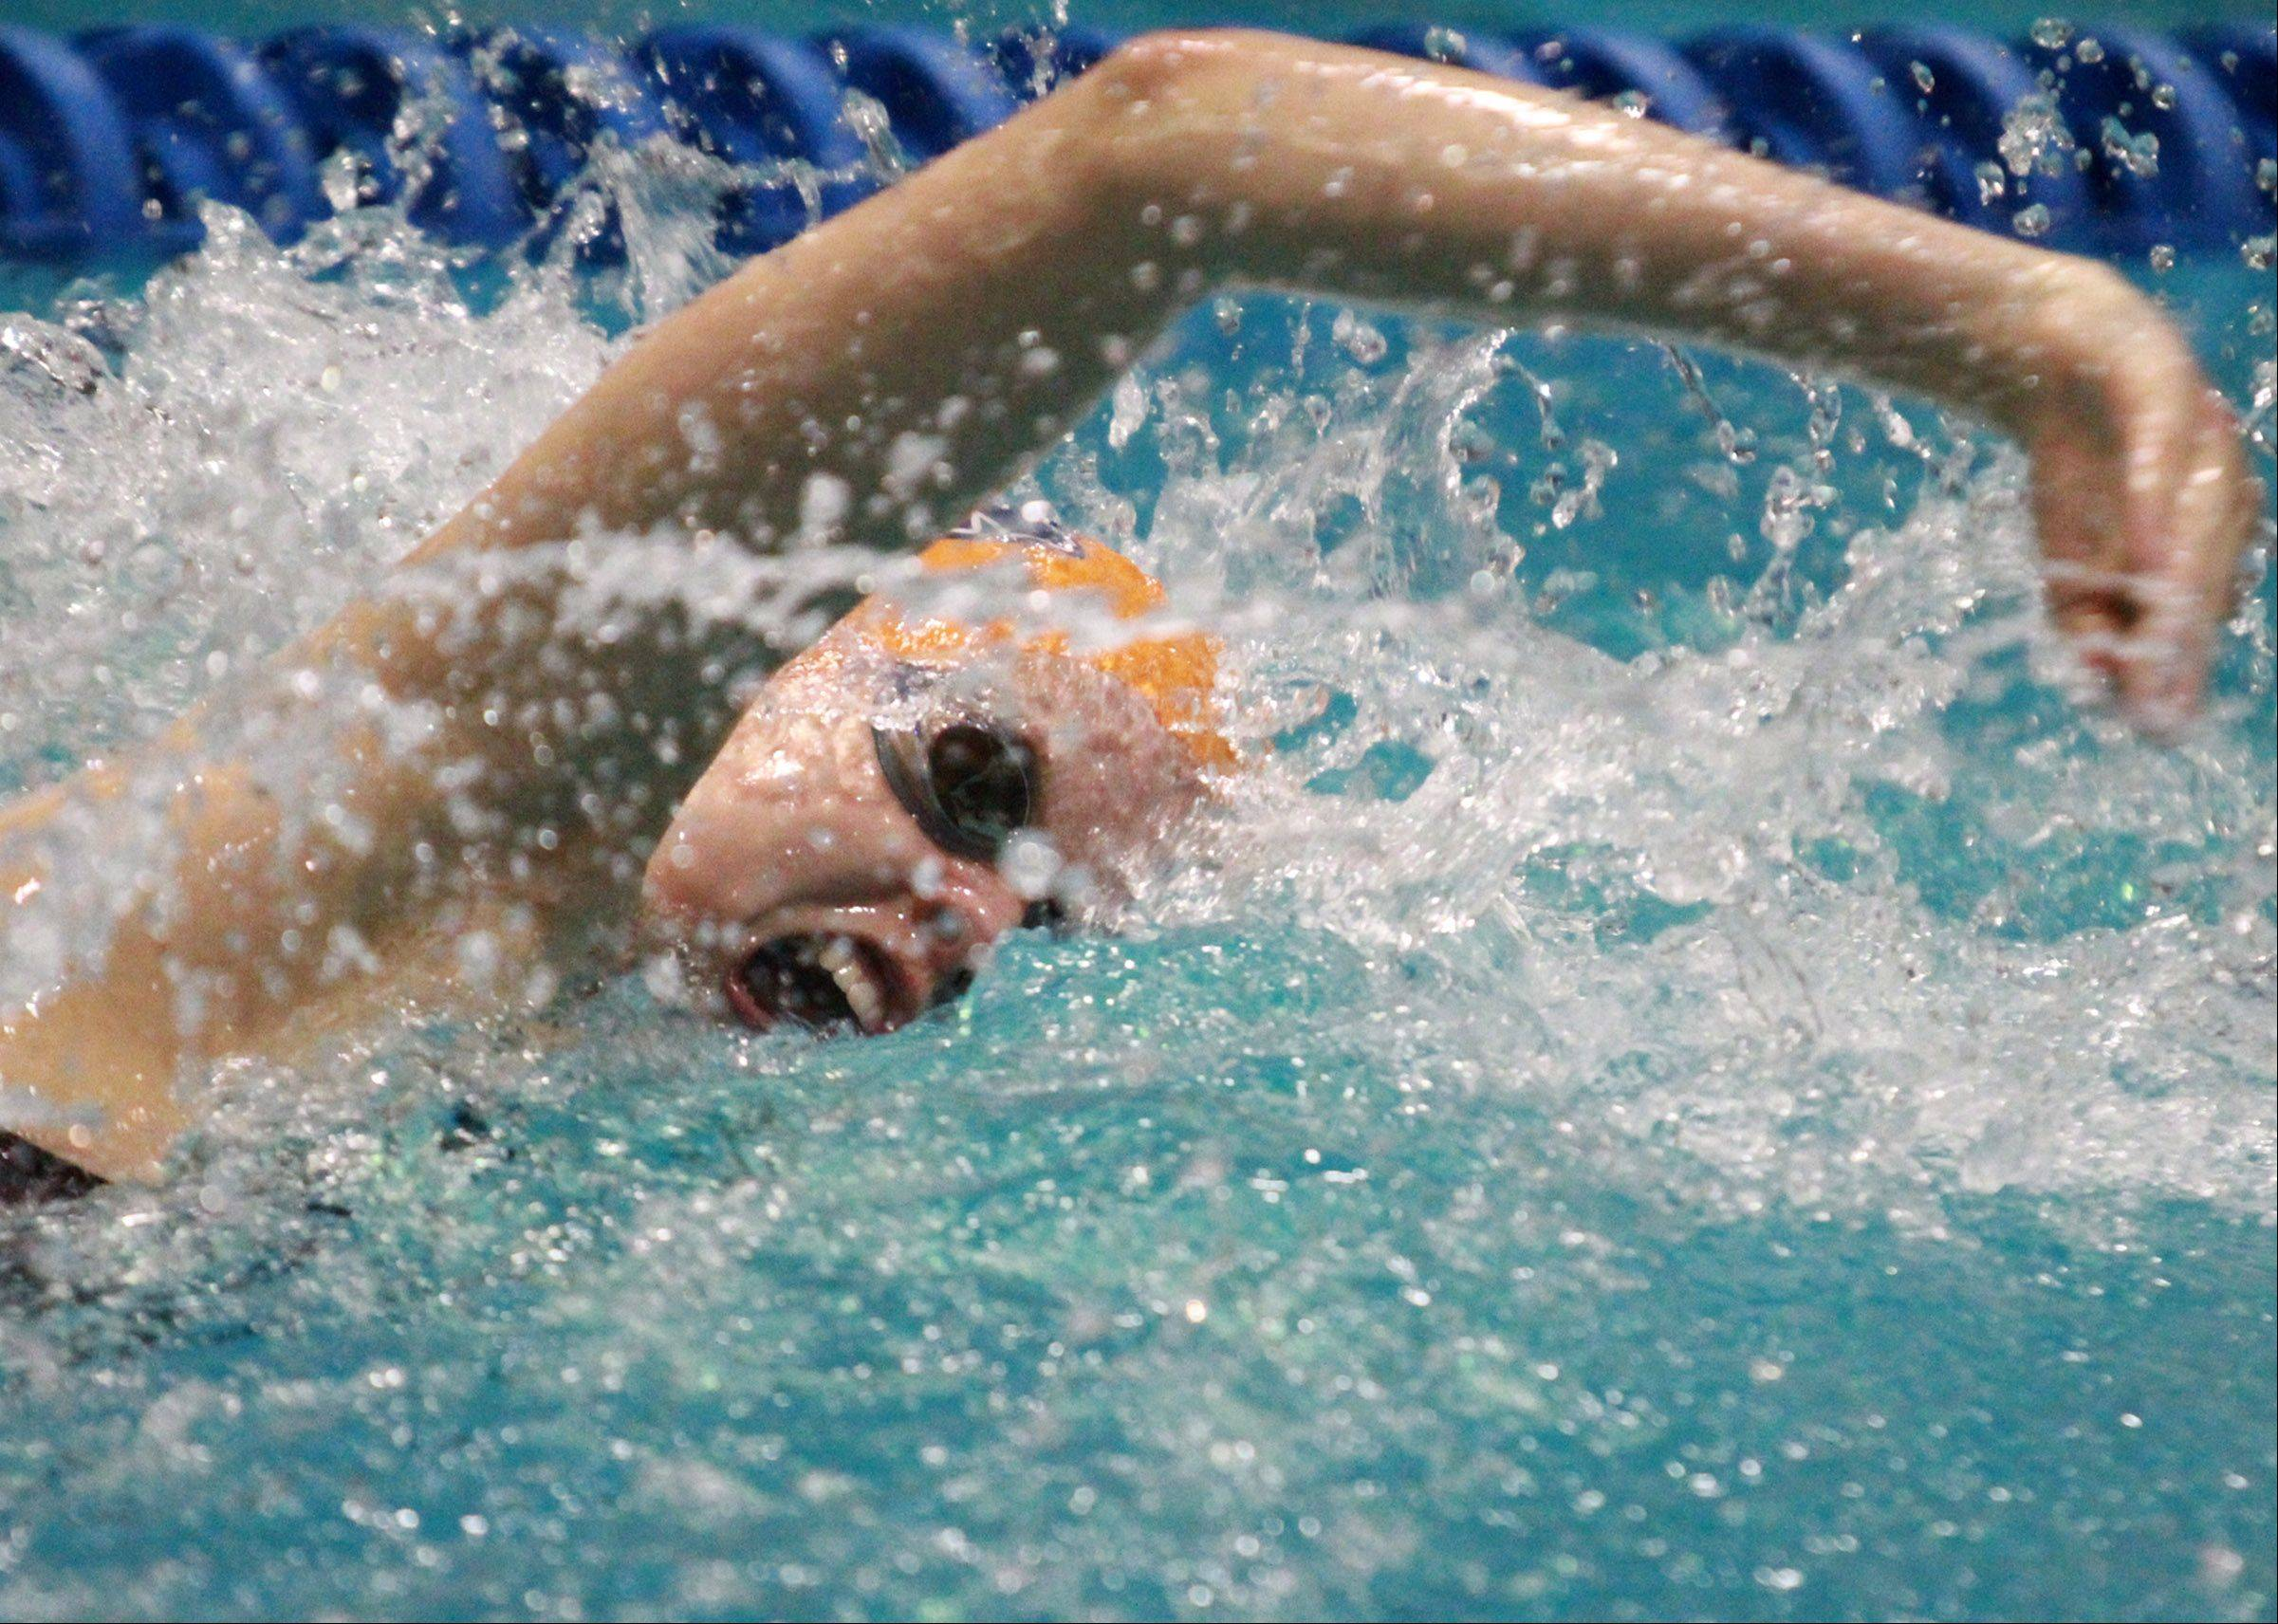 Veronika Jedryka with Buffalo Grove placed fifth in the 100-yard freestyle at the state meet preliminaries in Evanston on Friday.